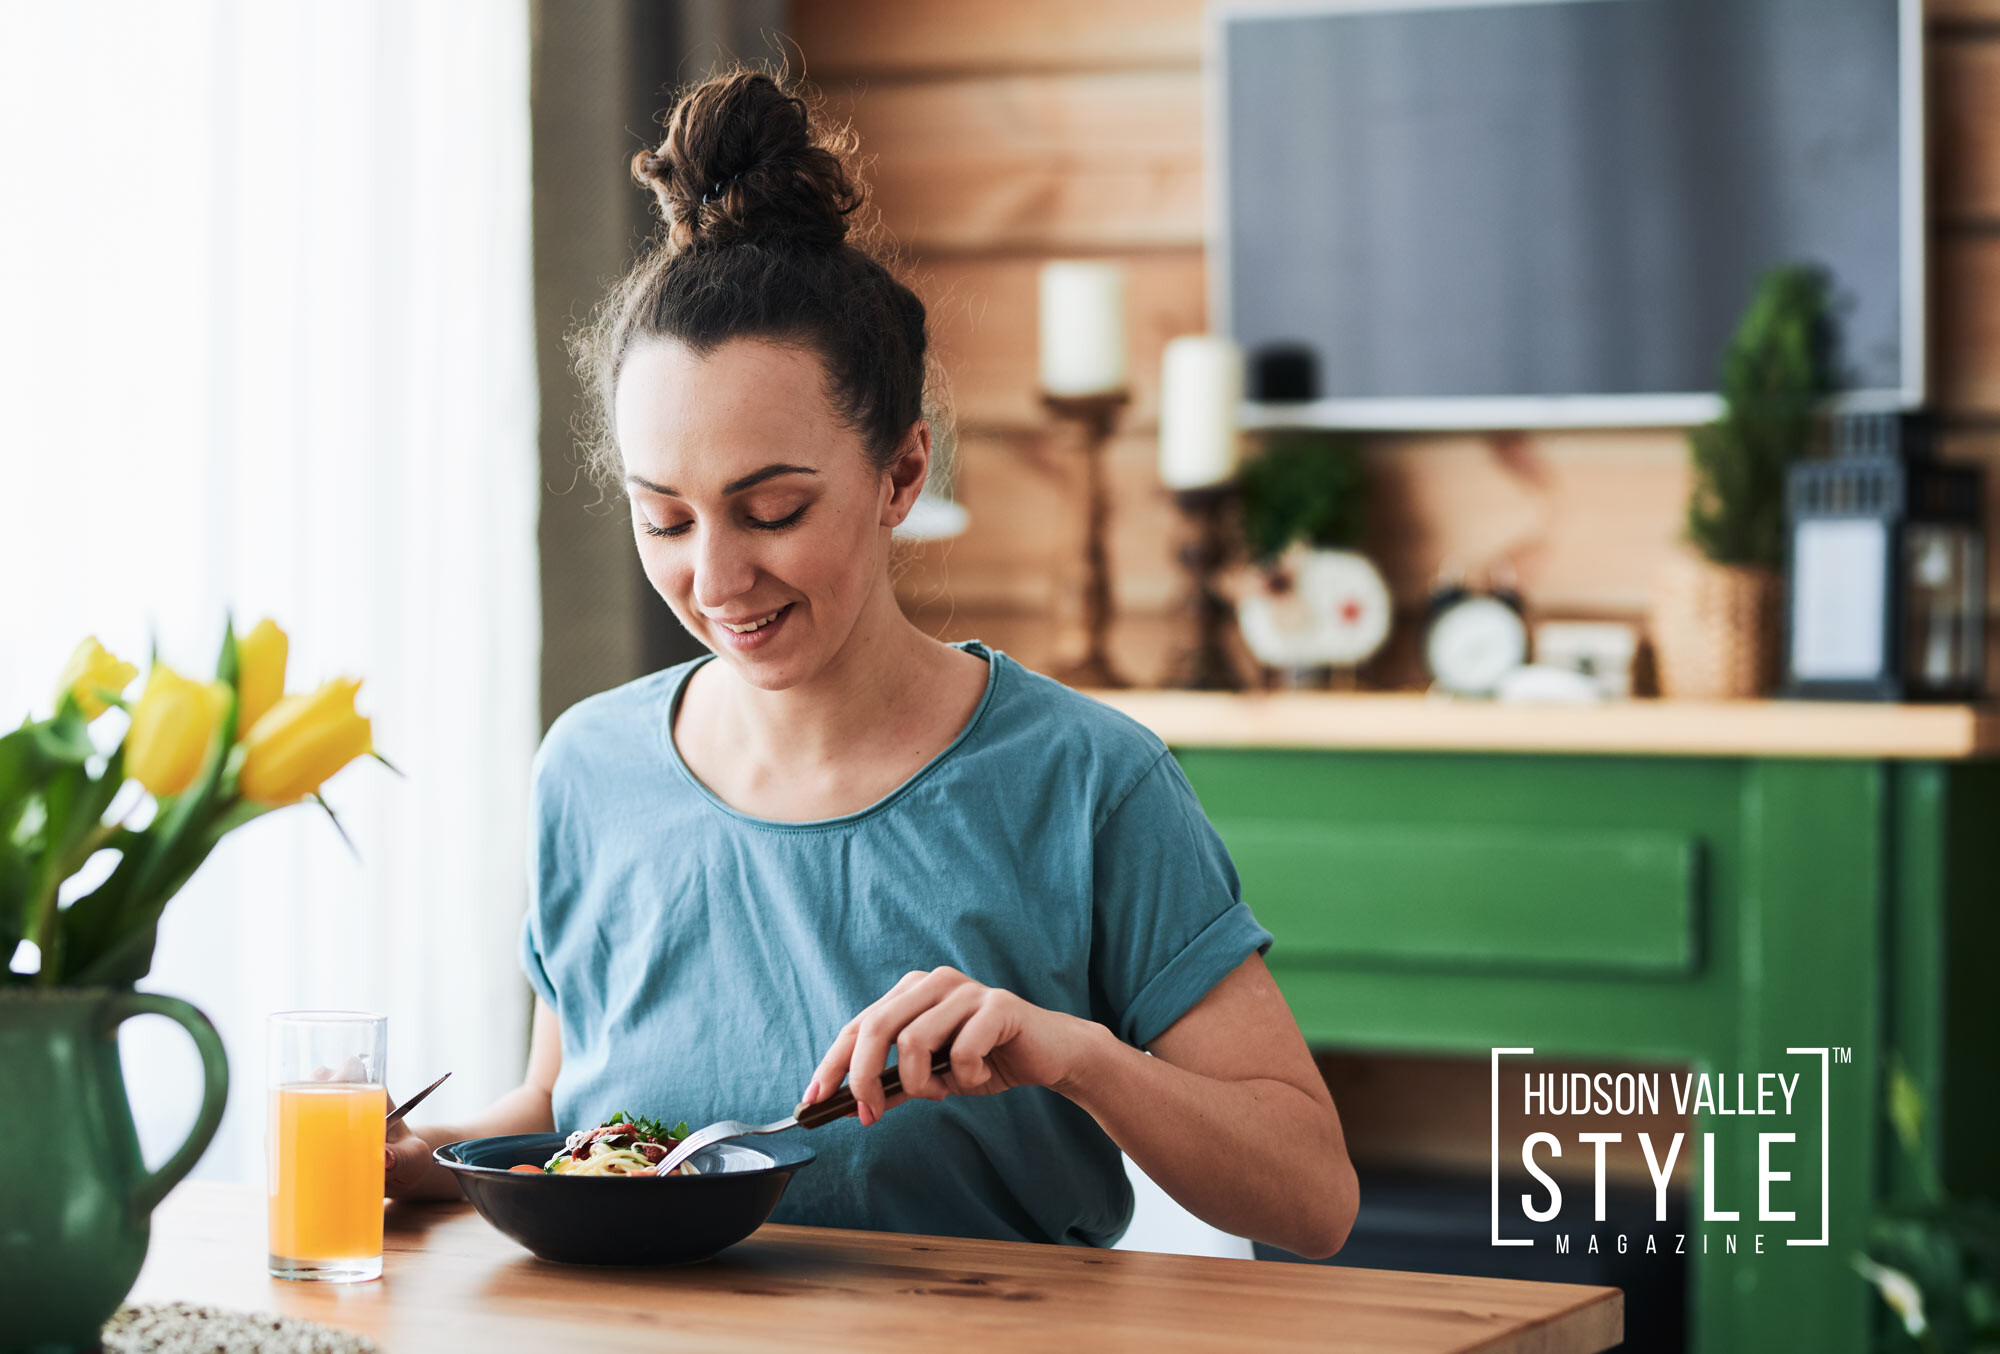 Healthy Eating Tips for Your Active Lifestyle in the Hudson Valley – by Maxwell Alexander, MA, BFA, Certified Elite Fitness Trainer, Certified Bodybuilding Coach, Certified Sports Nutrition Coach